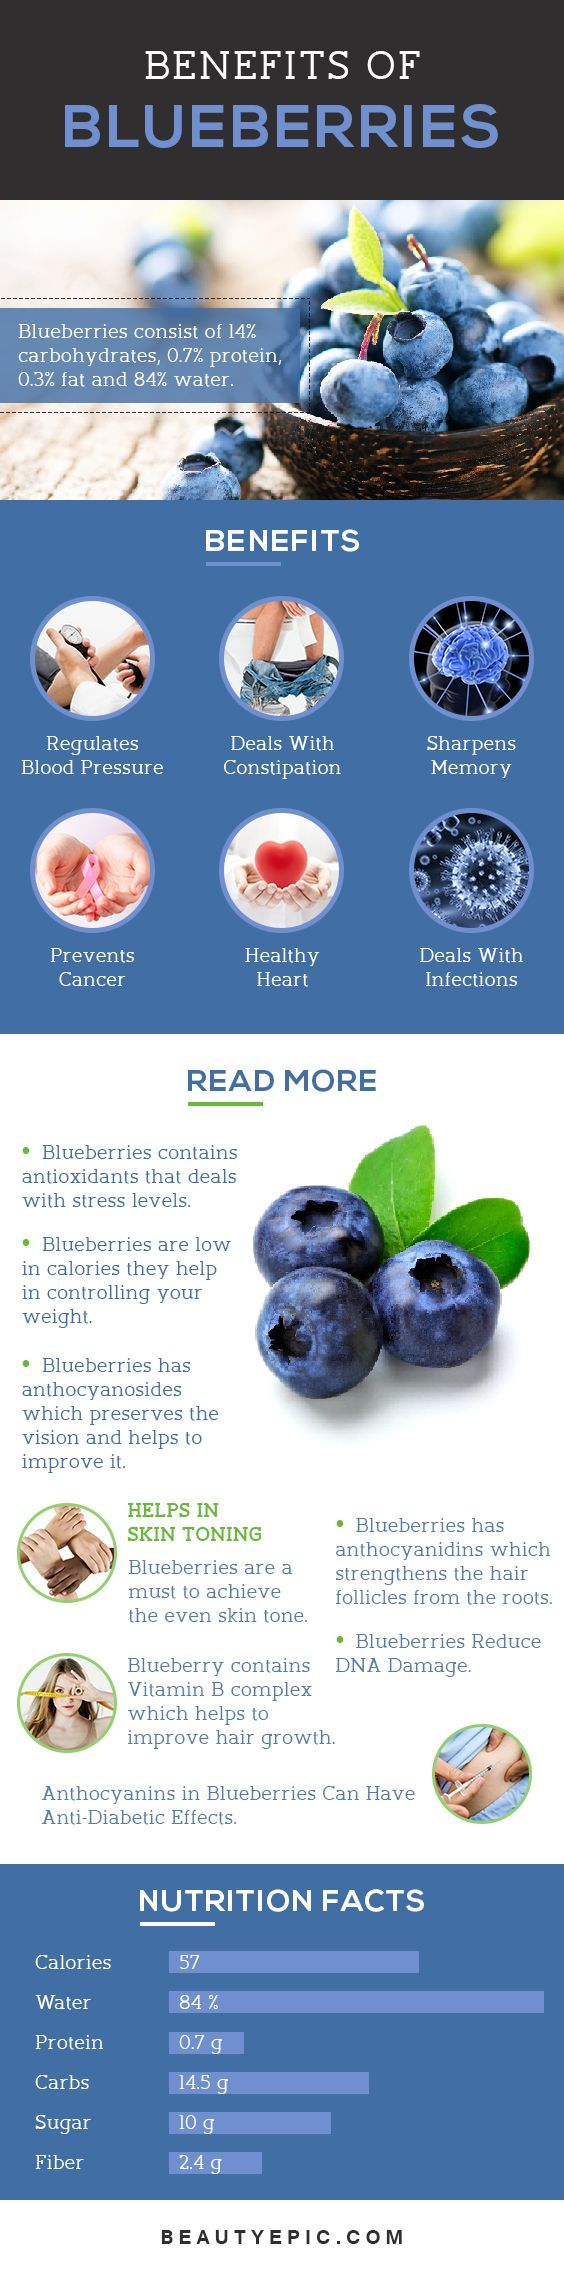 Amazing Benefits Of Blueberries For Skin, Hair, And Health 1